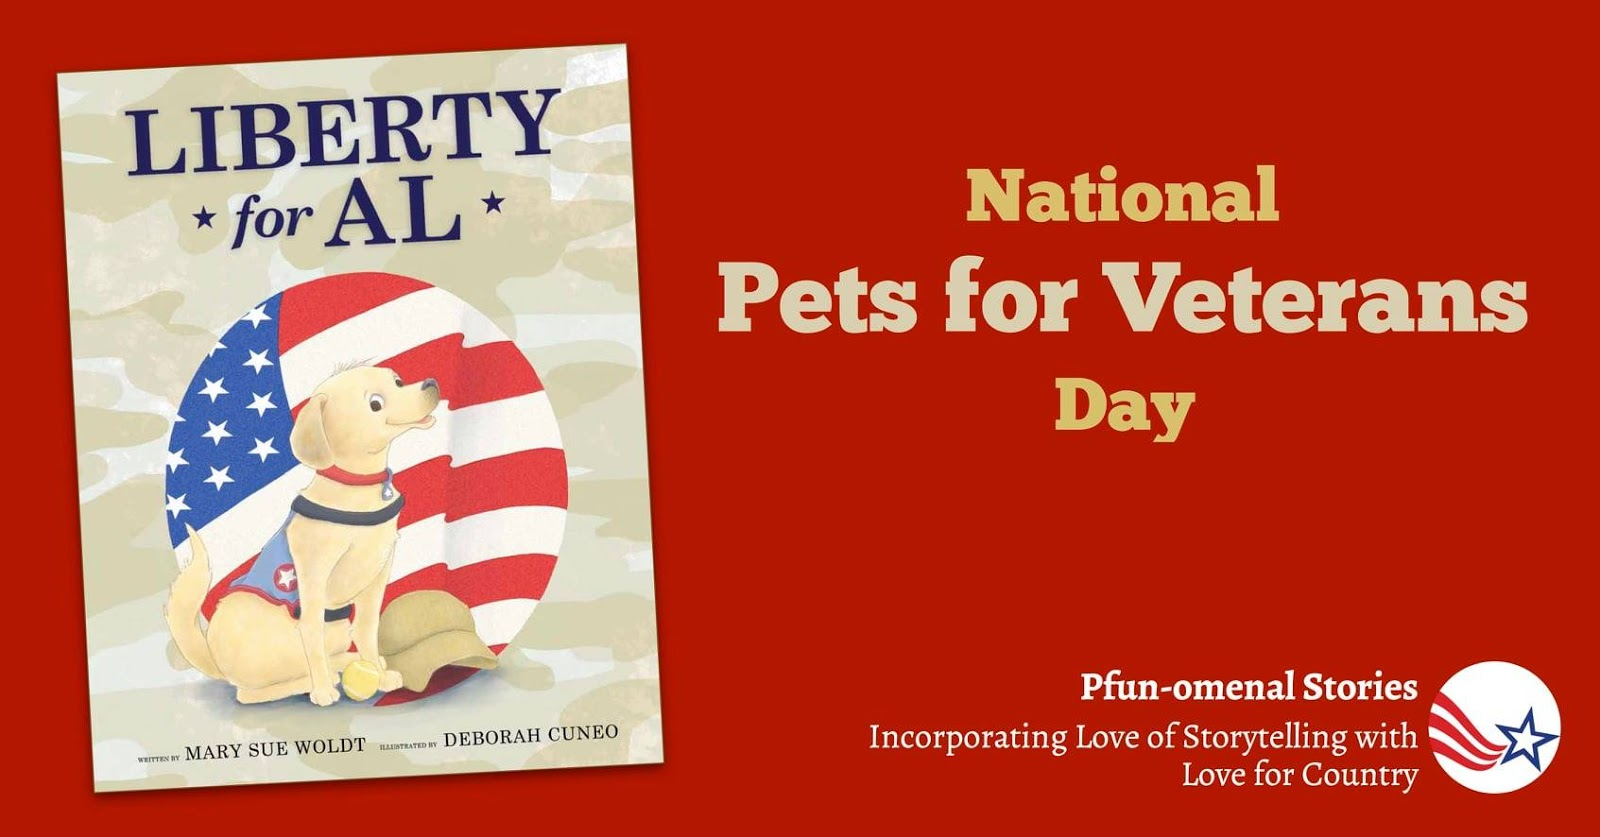 National Pets for Veterans Day Wishes Unique Image